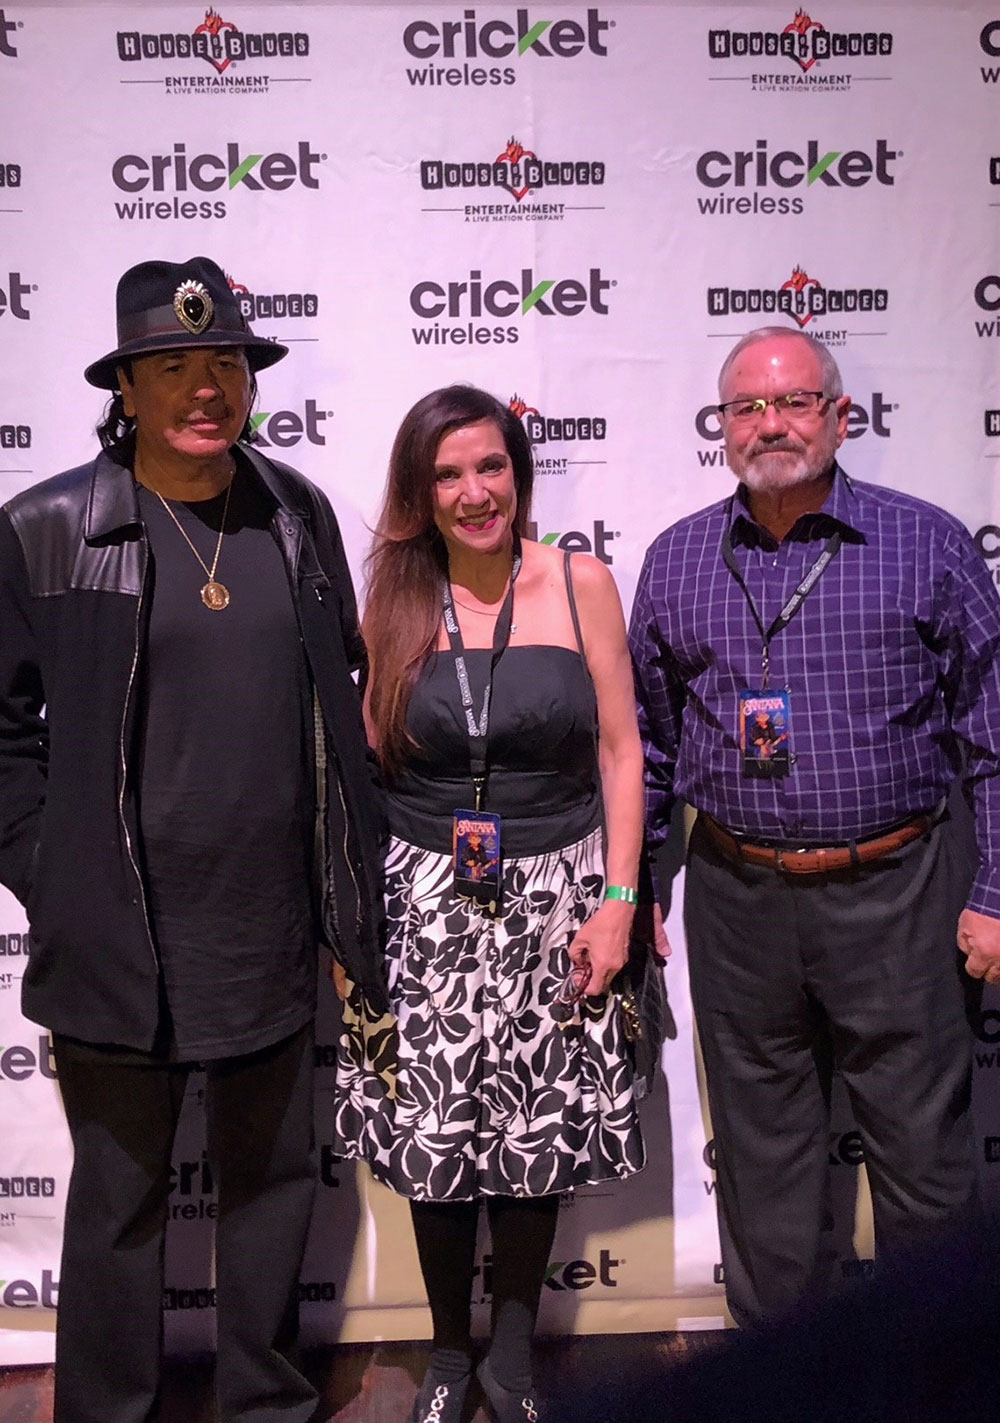 Sweepstakes winners' VIP meet and greet with Carlos Santana at House of Blues in Las Vegas, NV.